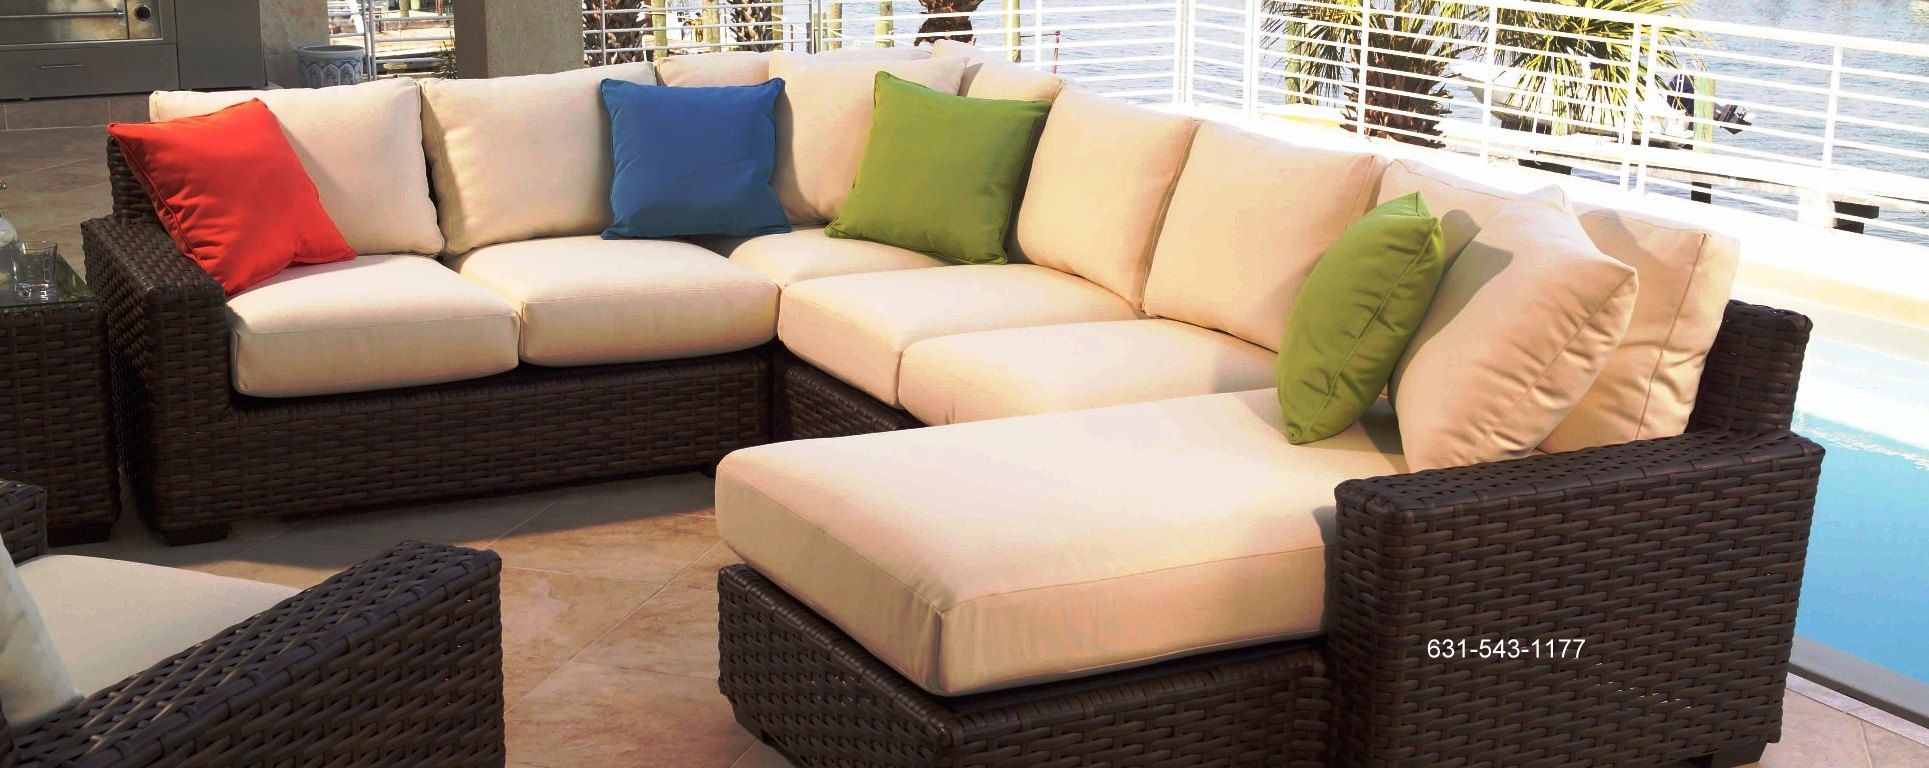 Explore Our Outdoor Furniture Grills Appliances At Gappsi Outdoor Furniture Furniture Outdoor Appliances